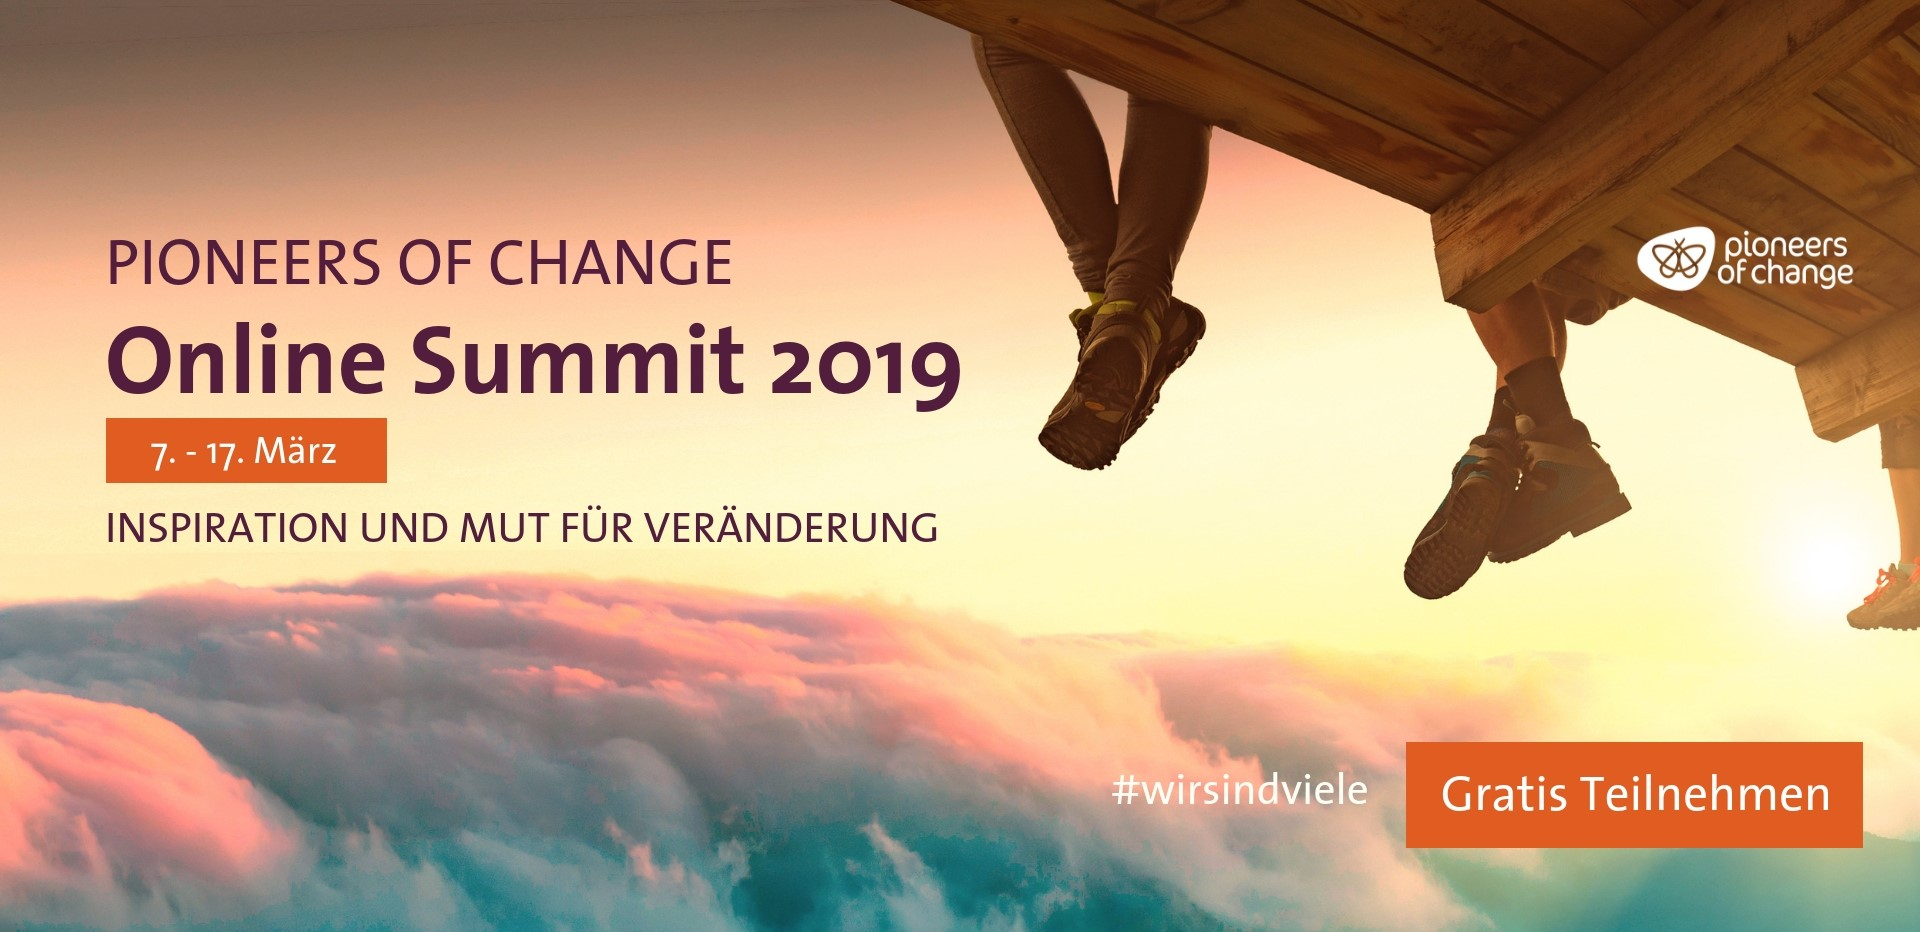 PIONEERS OF CHANGE Online Summit, 07. – 17. März 2019.